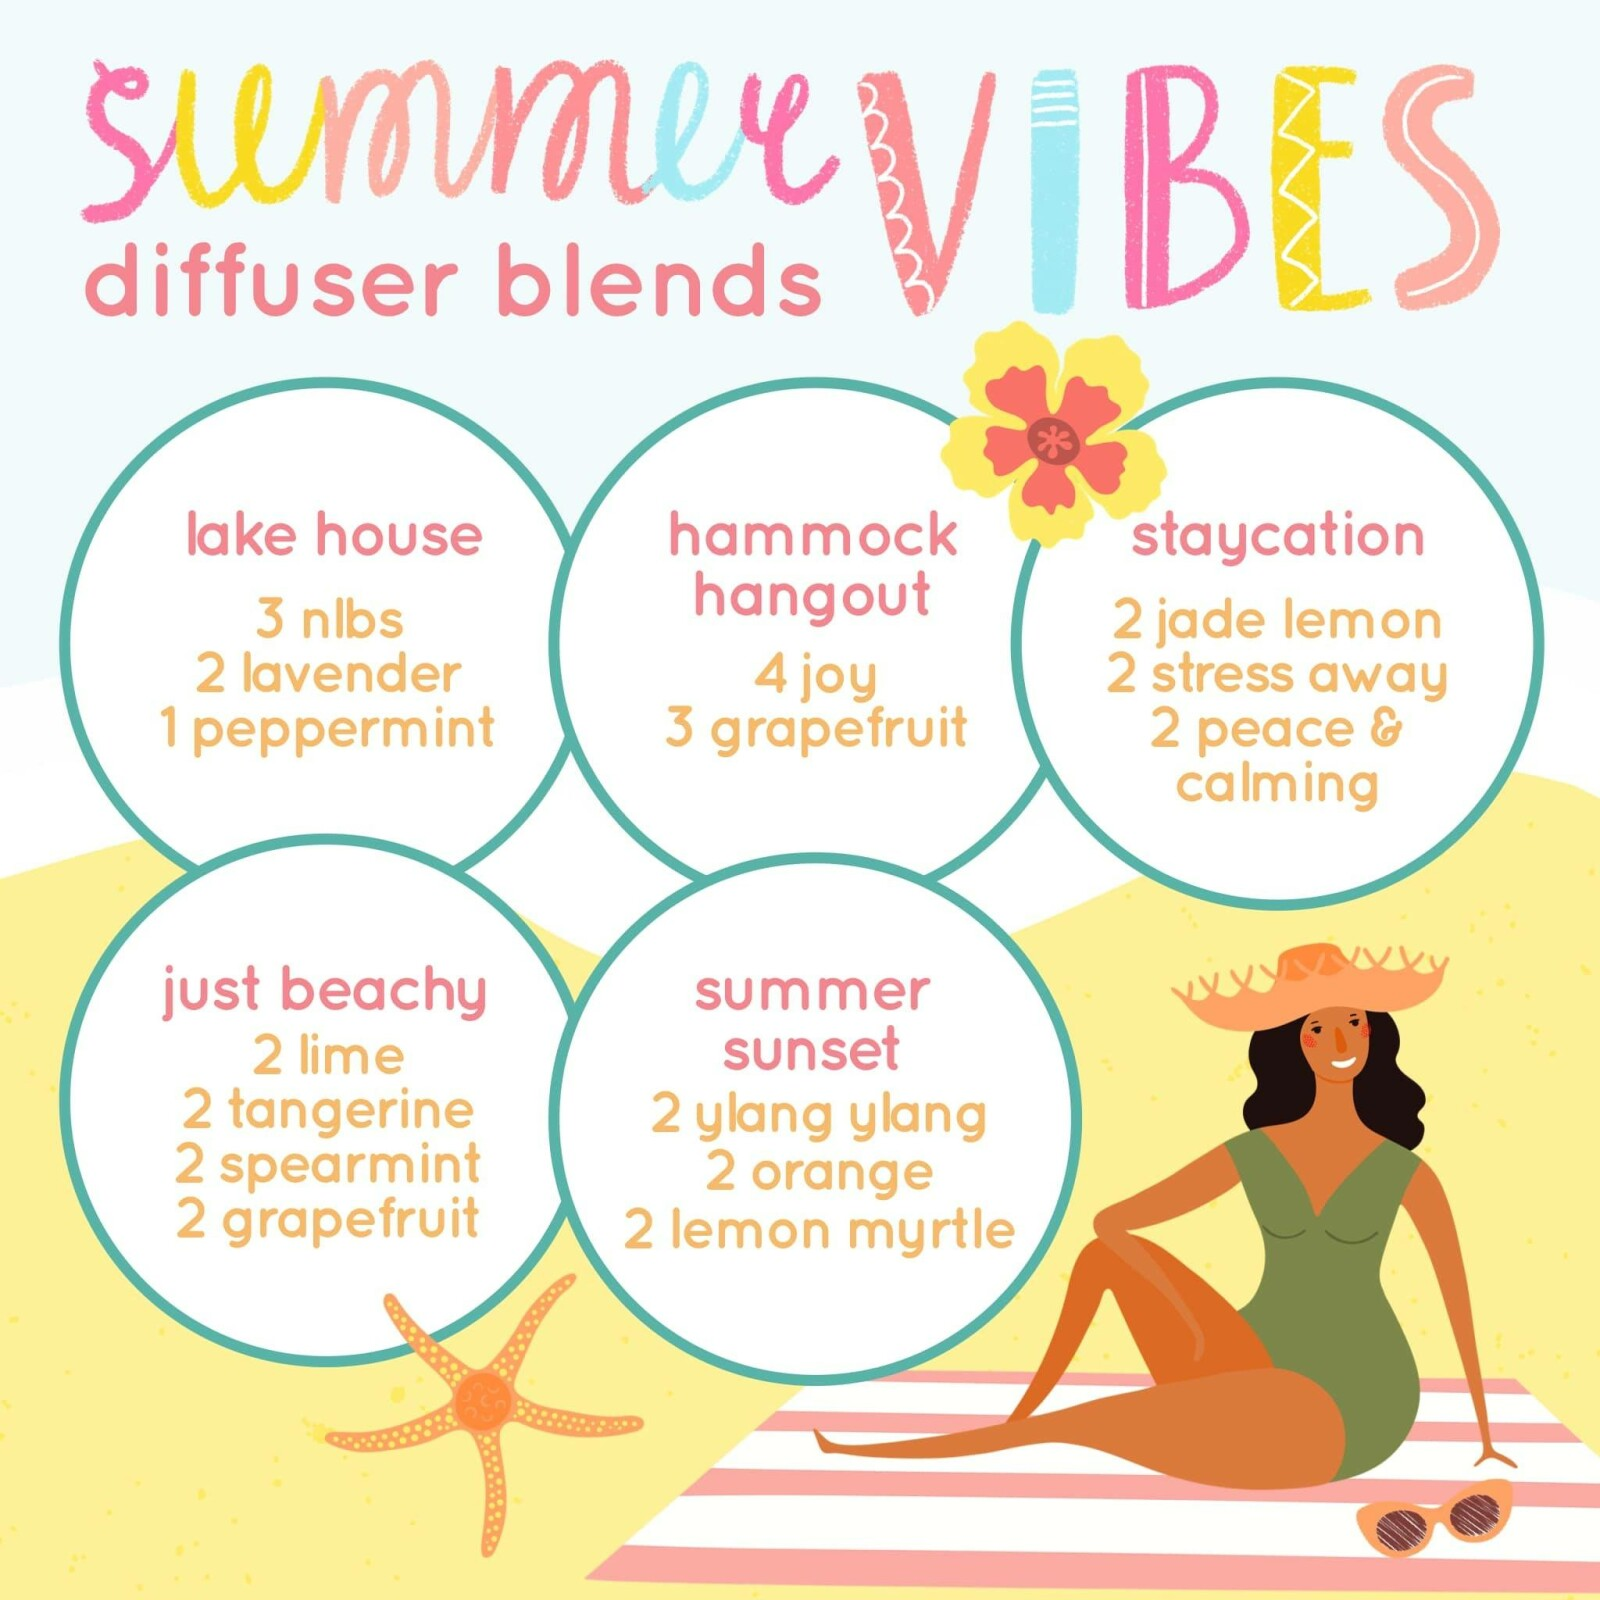 summer vibes diffuser blends